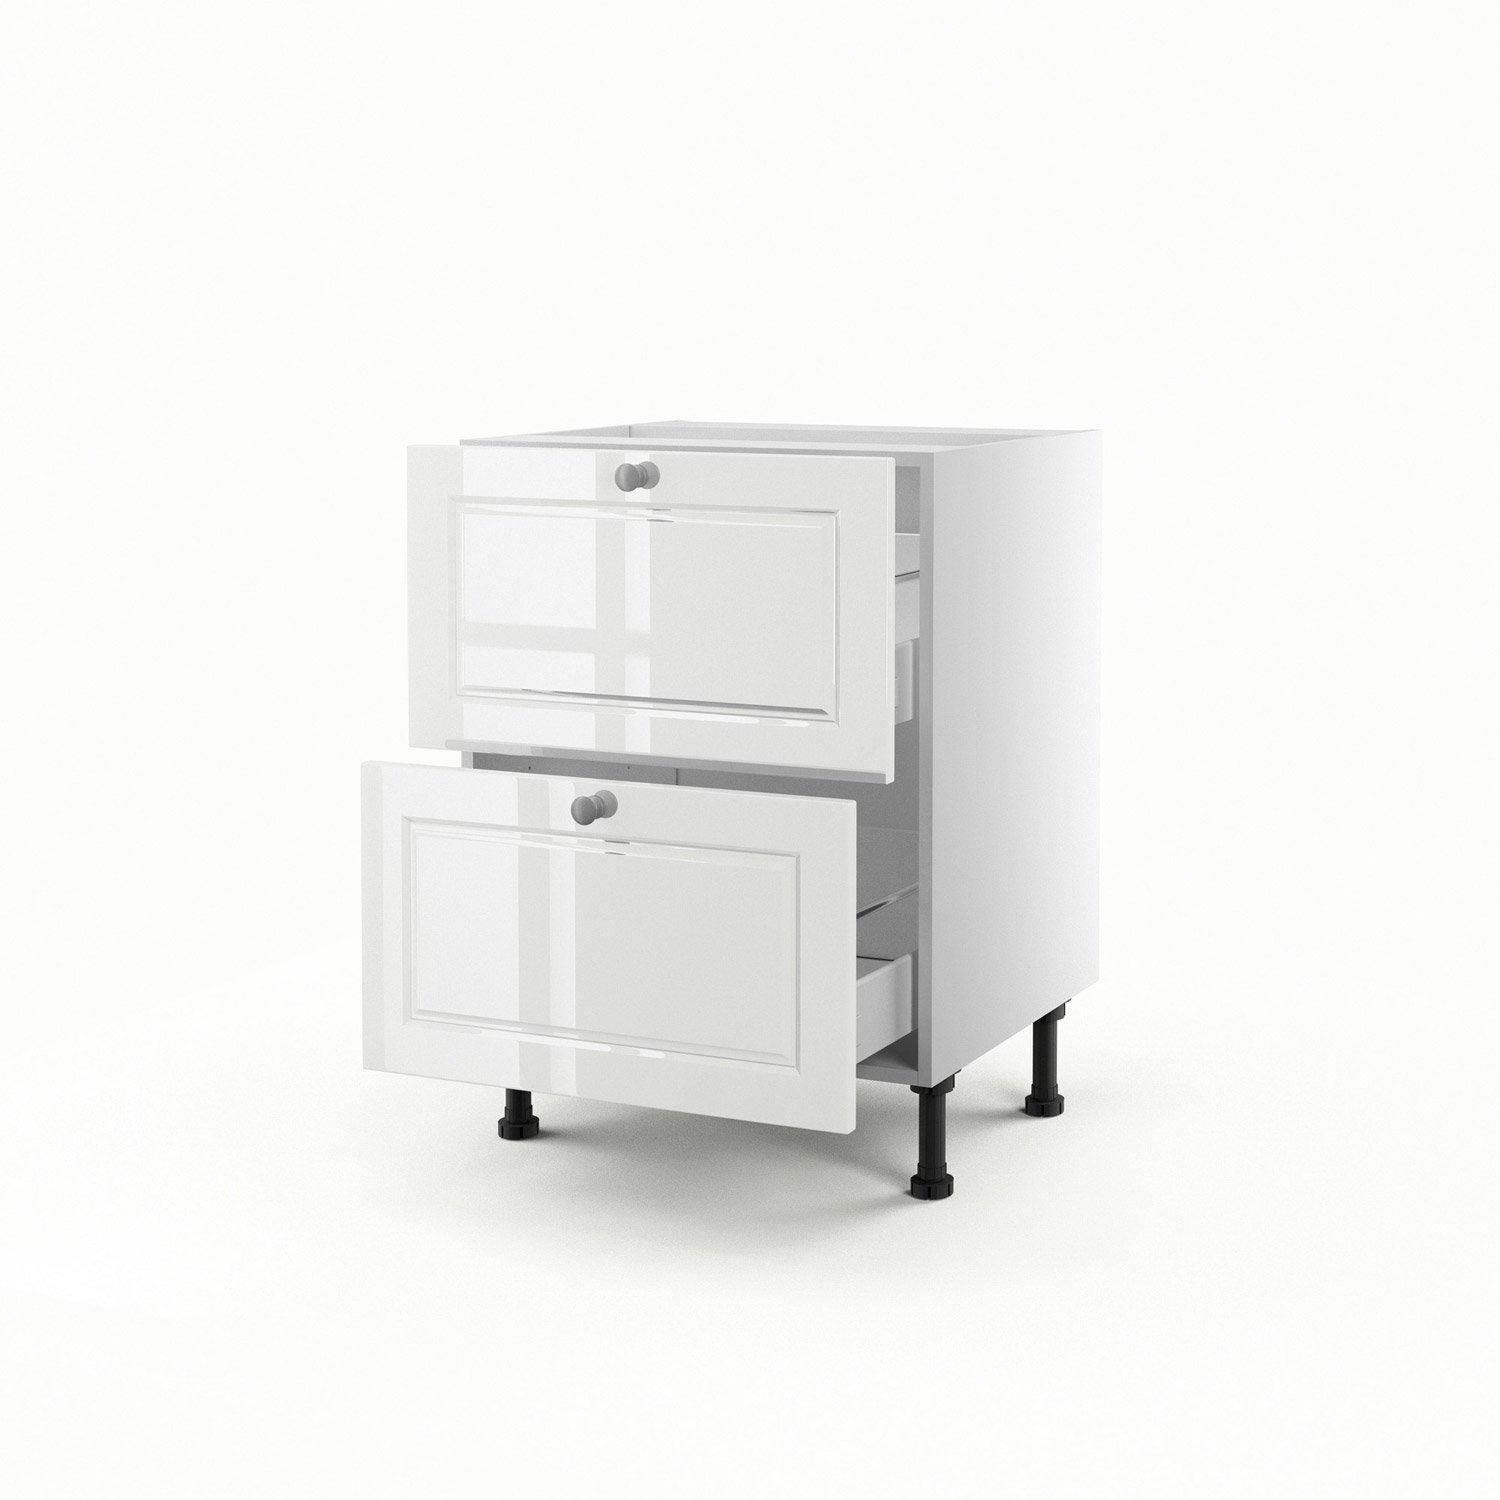 meuble de cuisine bas blanc 2 tiroirs chelsea x x cm leroy merlin. Black Bedroom Furniture Sets. Home Design Ideas